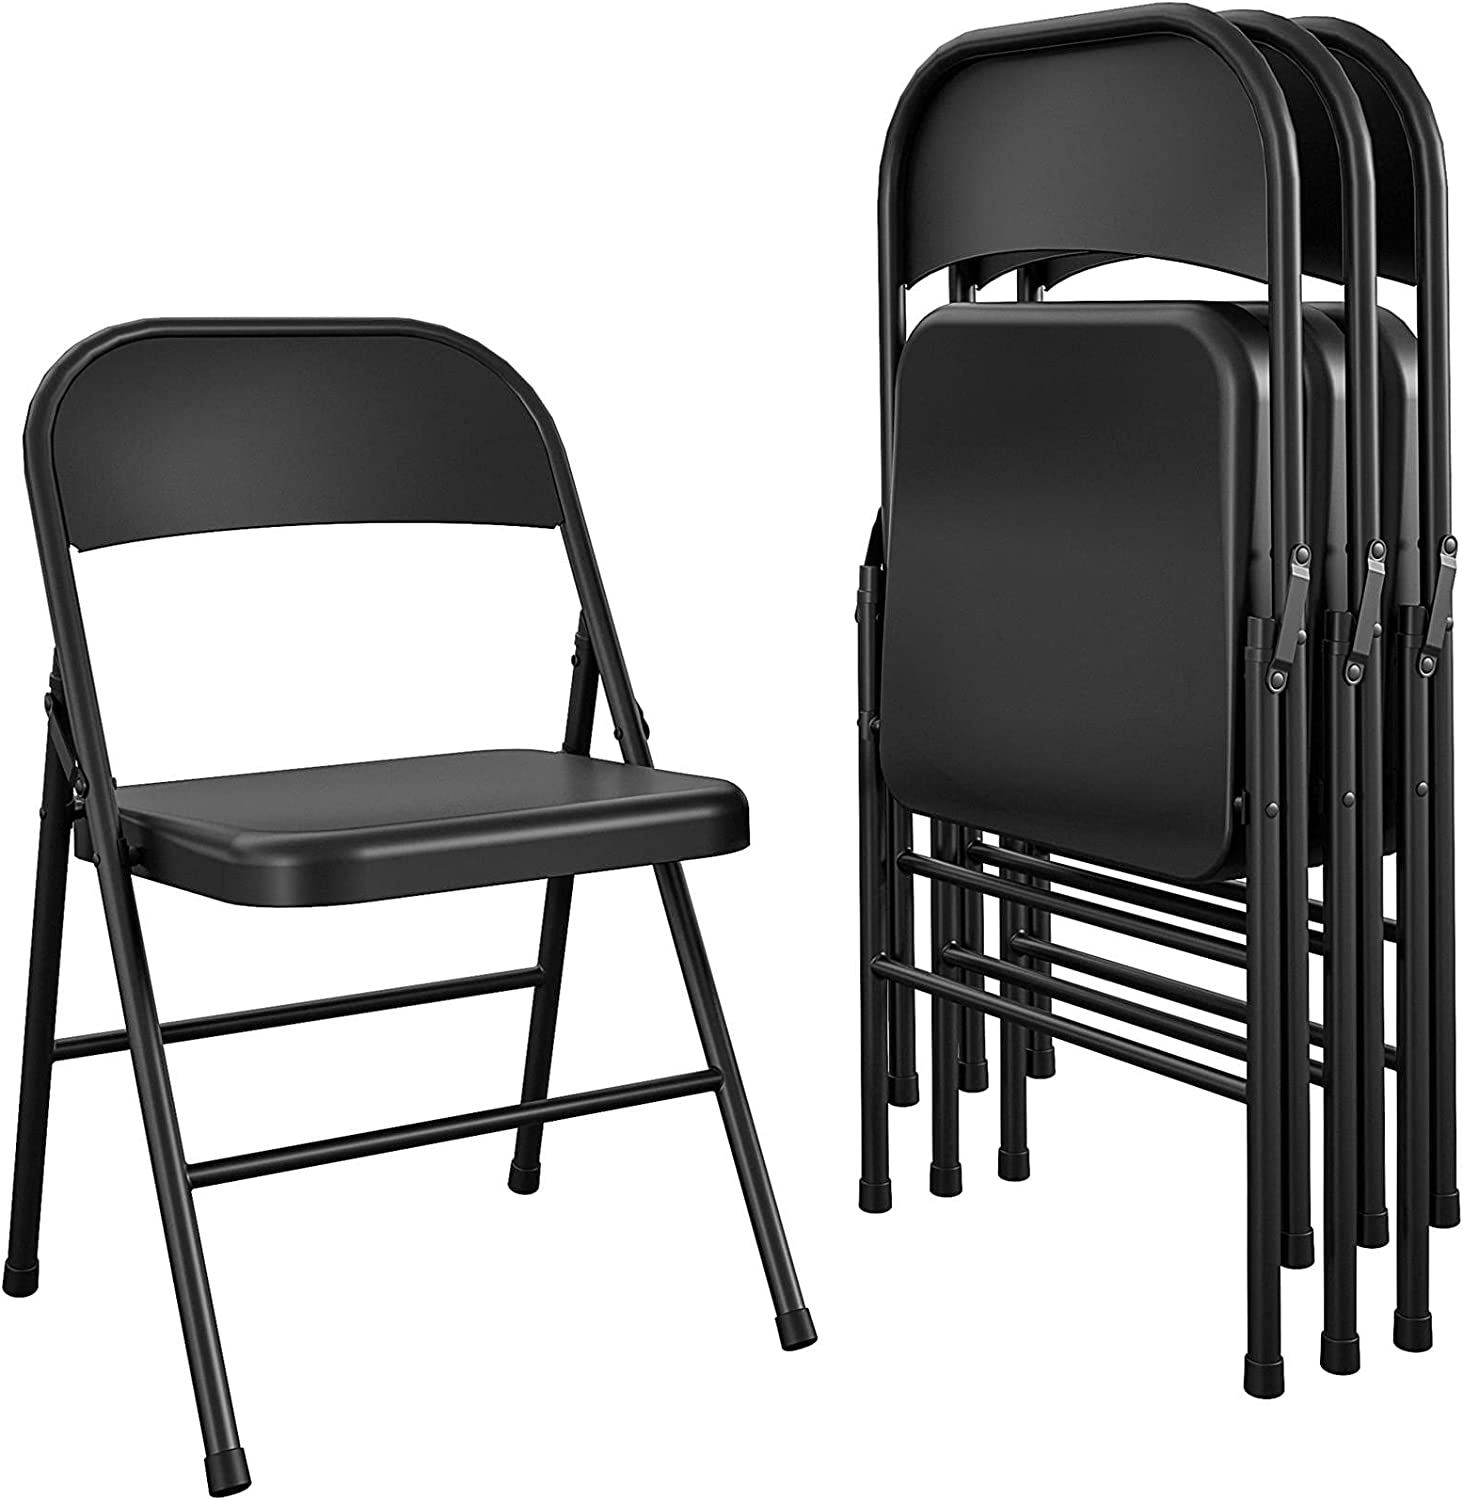 COSCO Essentials All-Steel Metal 25% OFF Folding Doubl Full-Size Chair Our shop most popular